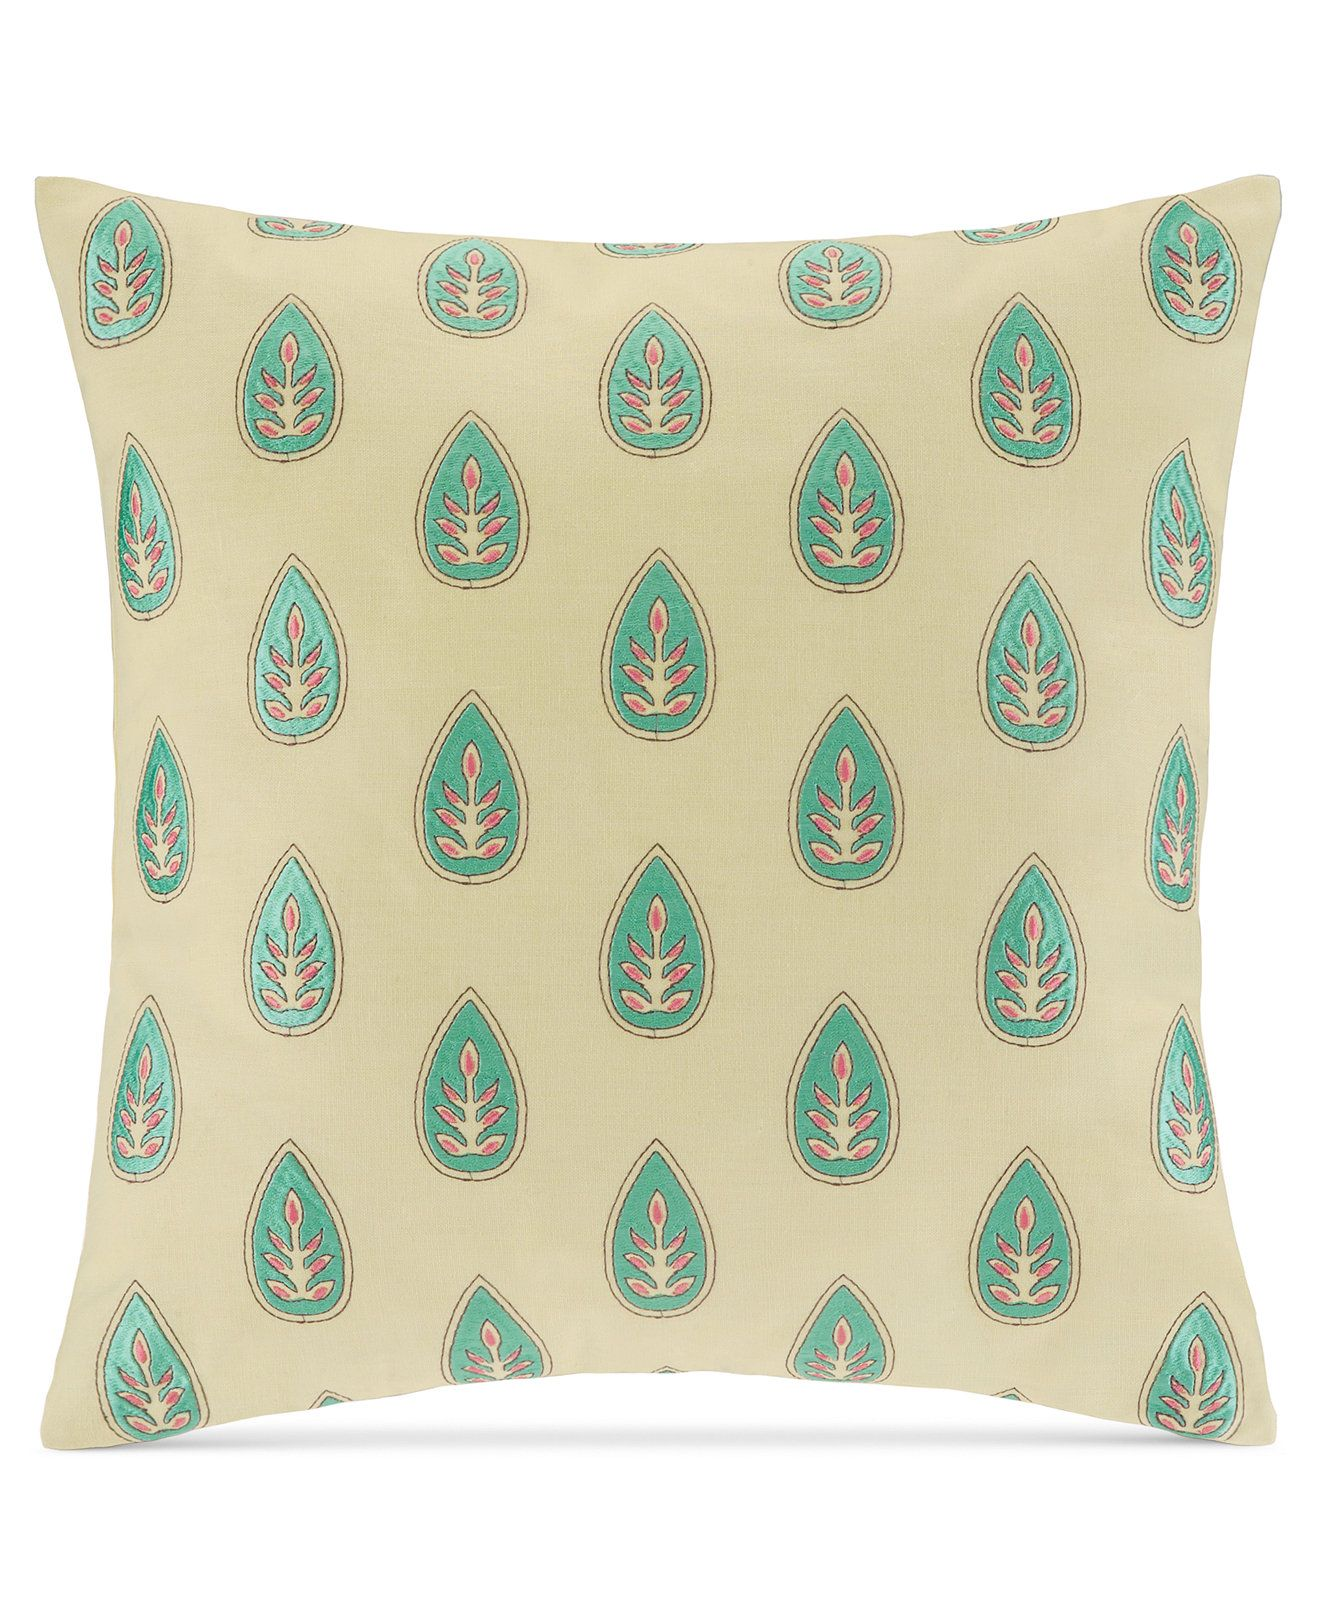 "Macy's Decorative Pillows Delectable Echo Guinevere 18"" Square Decorative Pillow  Bedding Collections Inspiration Design"